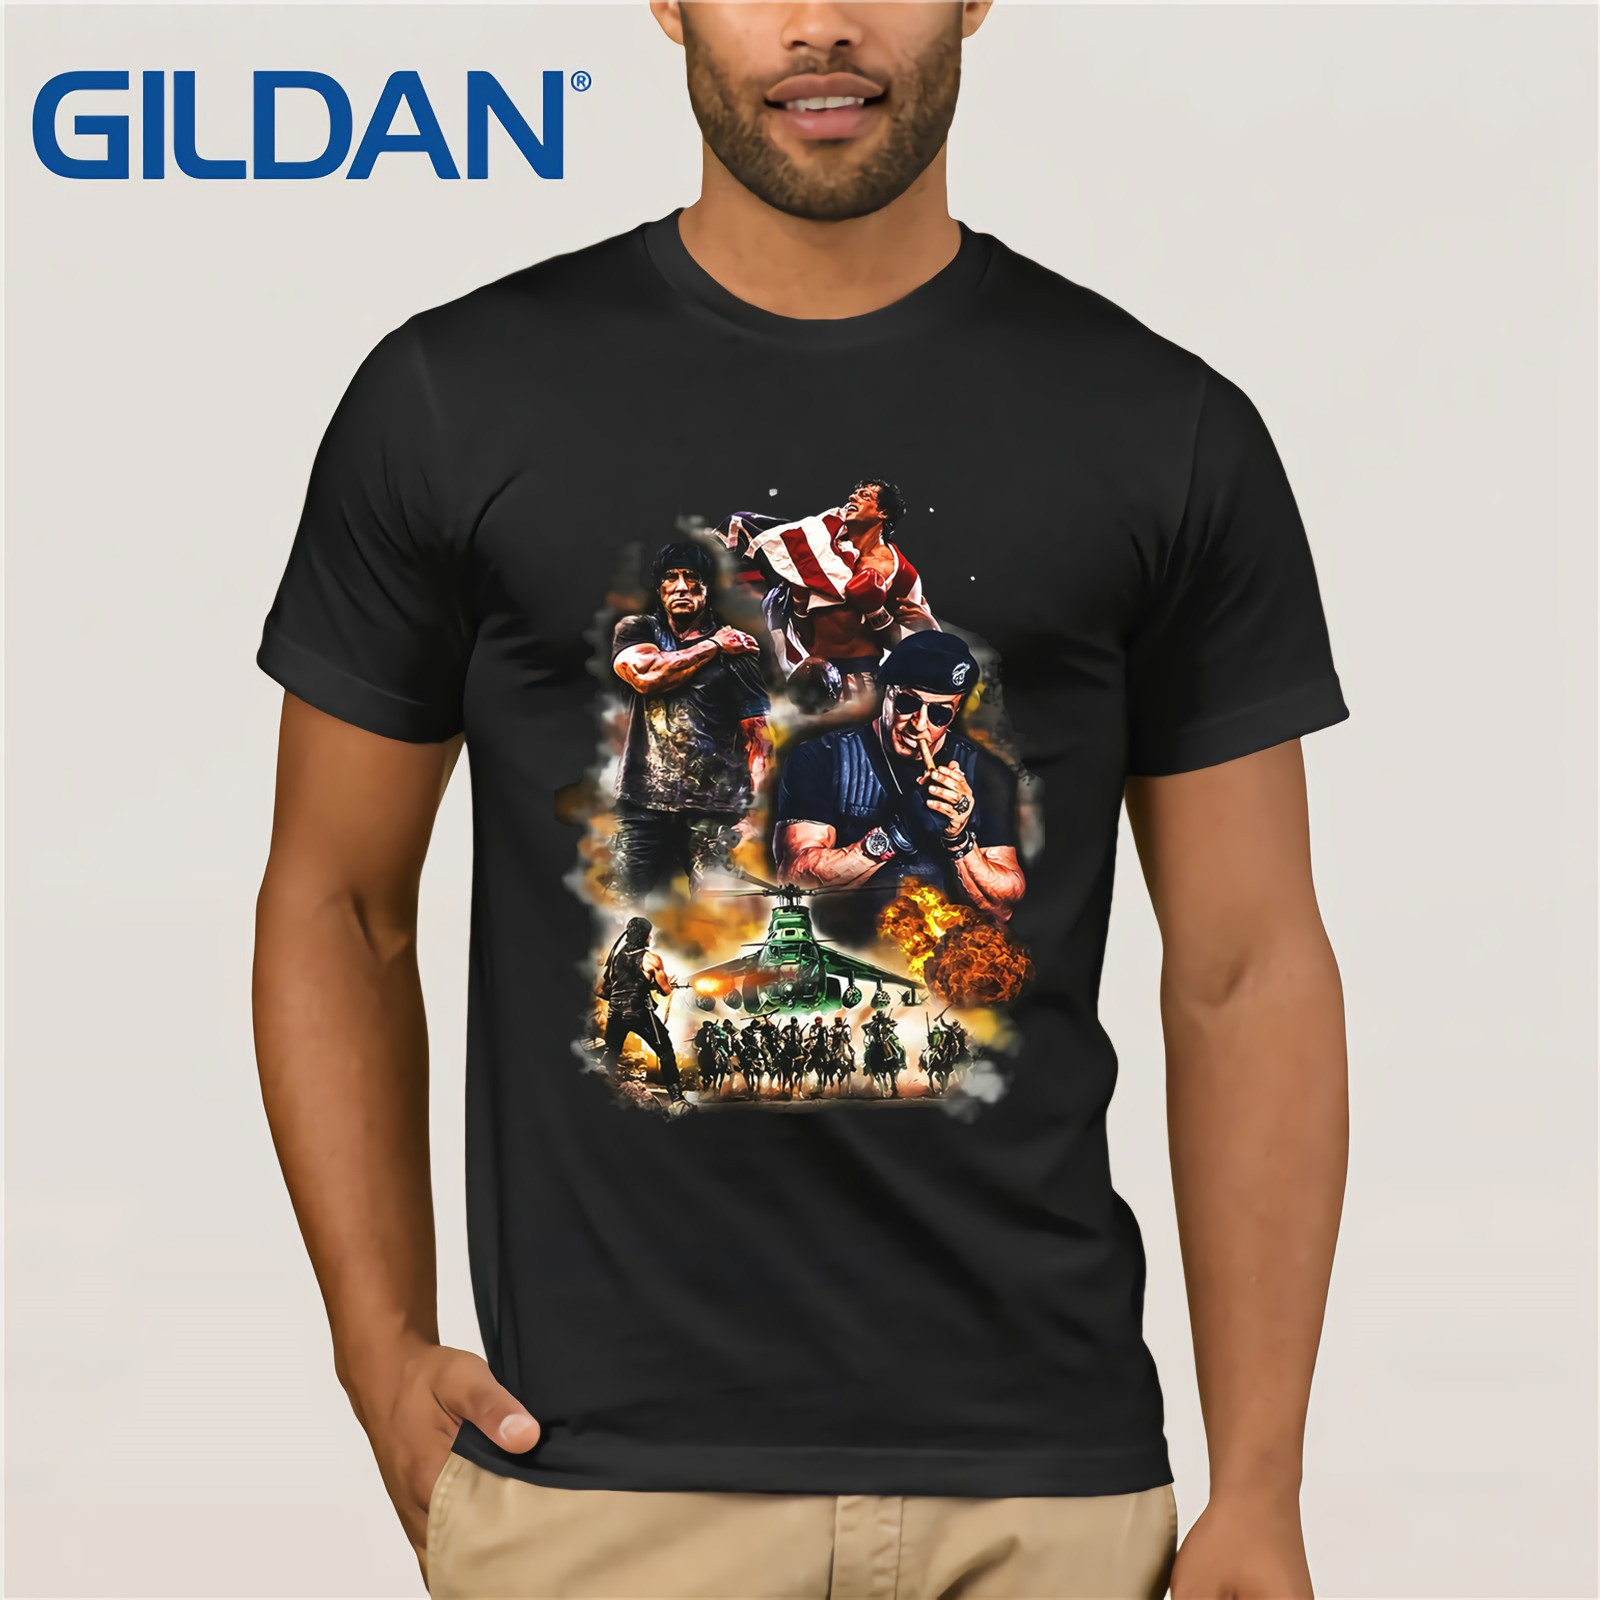 Sylvester Stallone Damen Girlie Rambo Rocky Boxing Balboa Fun Kult T Shirt 2019 Summer Herren Short Sleeve T Shirt Tee Buy At The Price Of 7 89 In Aliexpress Com Imall Com